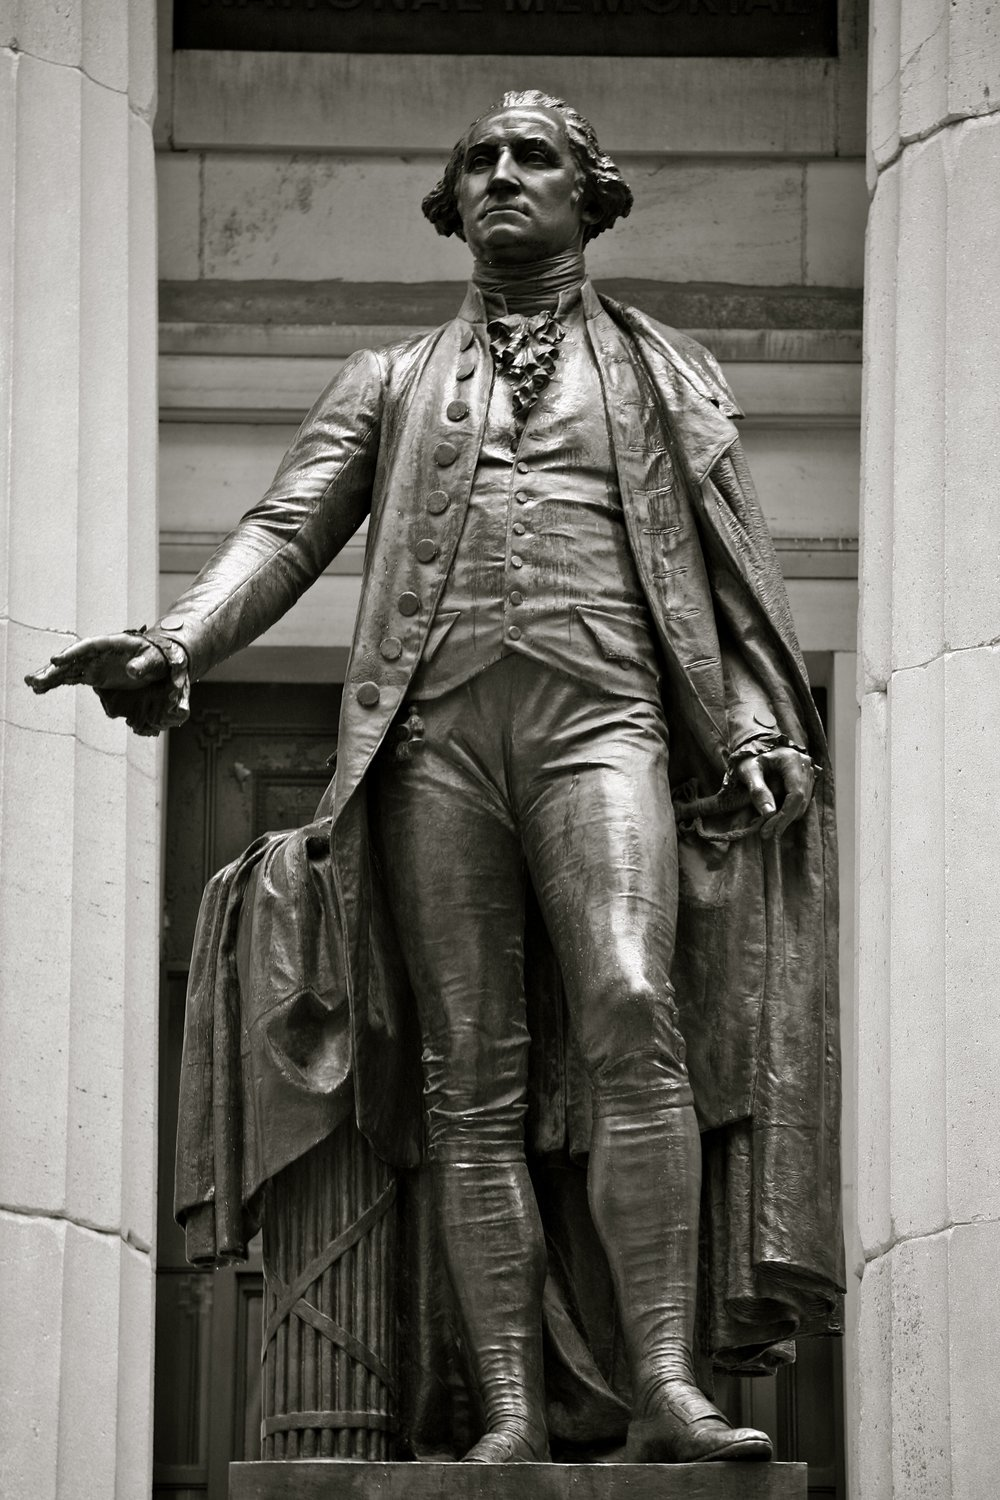 The George Washington Statue at Federal Hall